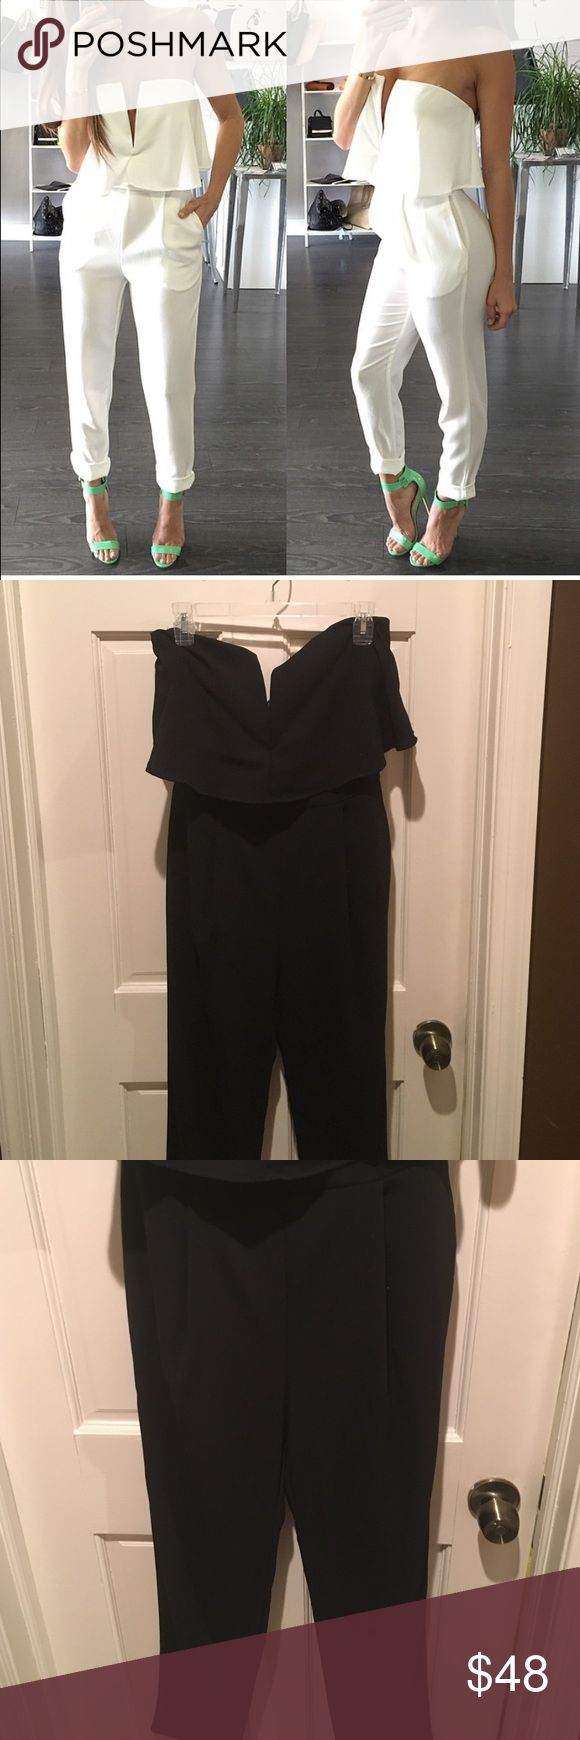 Black Deep V Romper Deep V black romper with side pockets! Size Medium. Great for a night out with friends or that special someone! Cover photo was put up to really show the look of the romper, it is the exact romper shown only in black! Pants Jumpsuits & Rompers